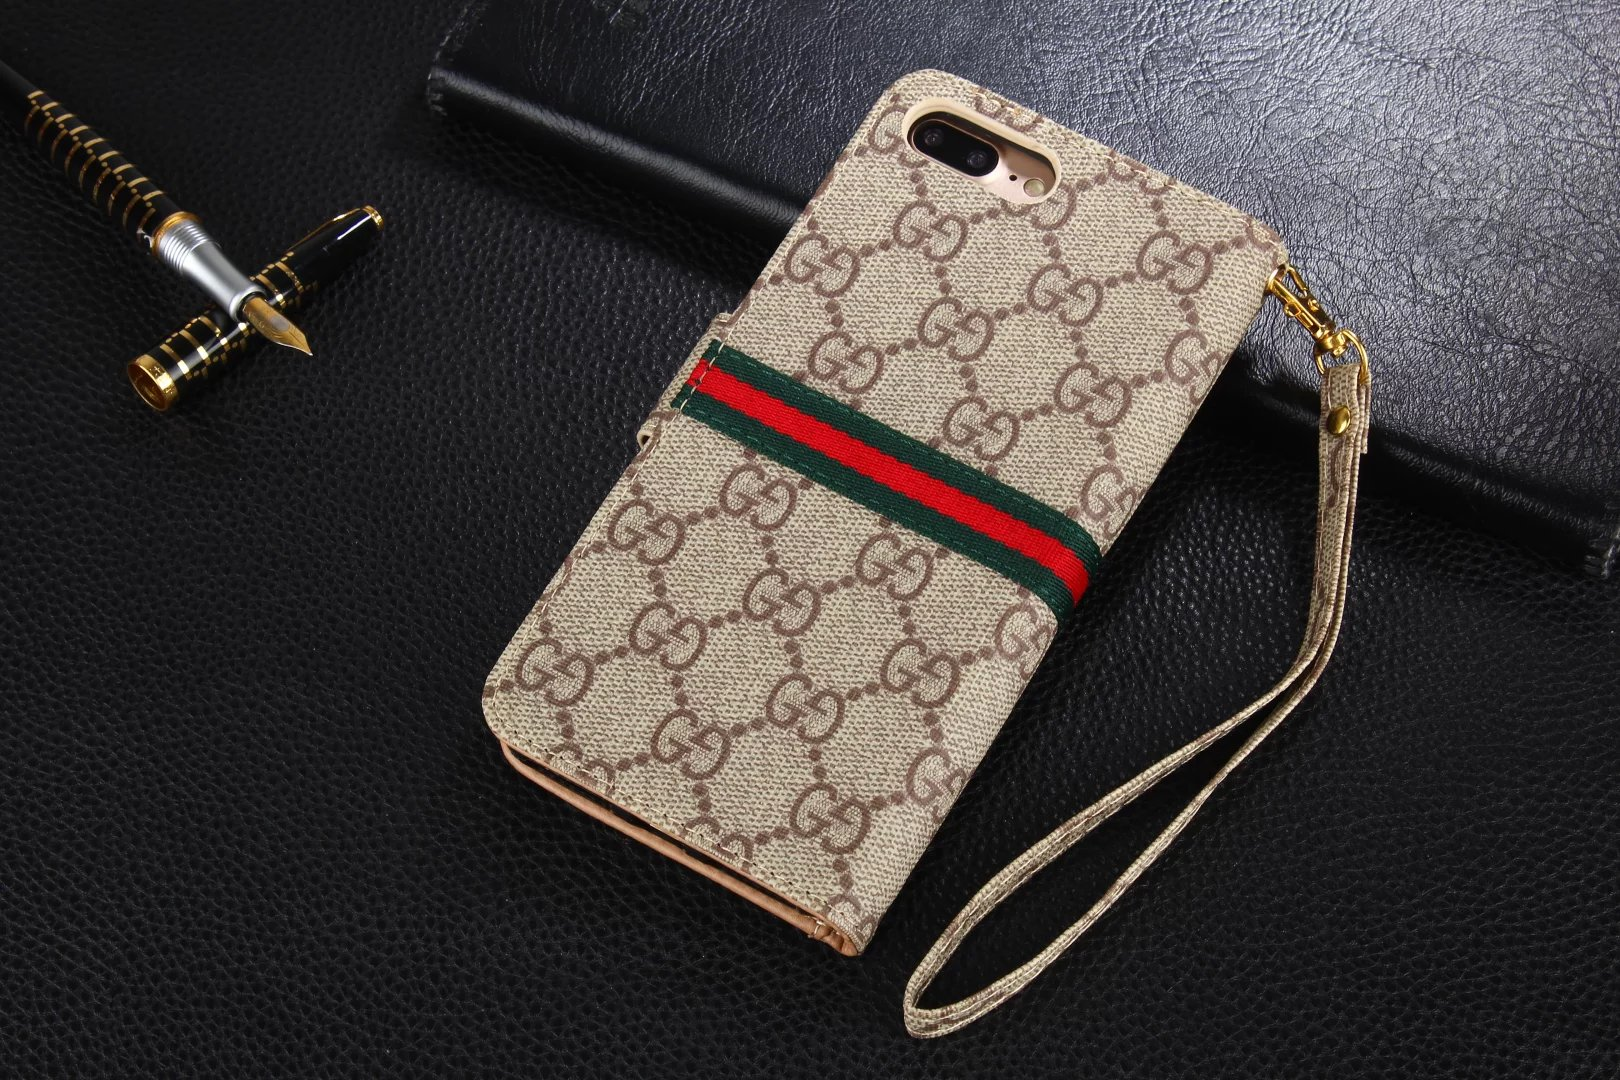 iphone hülle mit foto bedrucken handyhülle foto iphone Gucci iphone 8 hüllen iphone 8 s hülle leder iphone 8 portemonnaie hülle foto handyhülle iphone 8 wann kommt neues iphone iphone 8 klapphüllen iphone silikonhülle